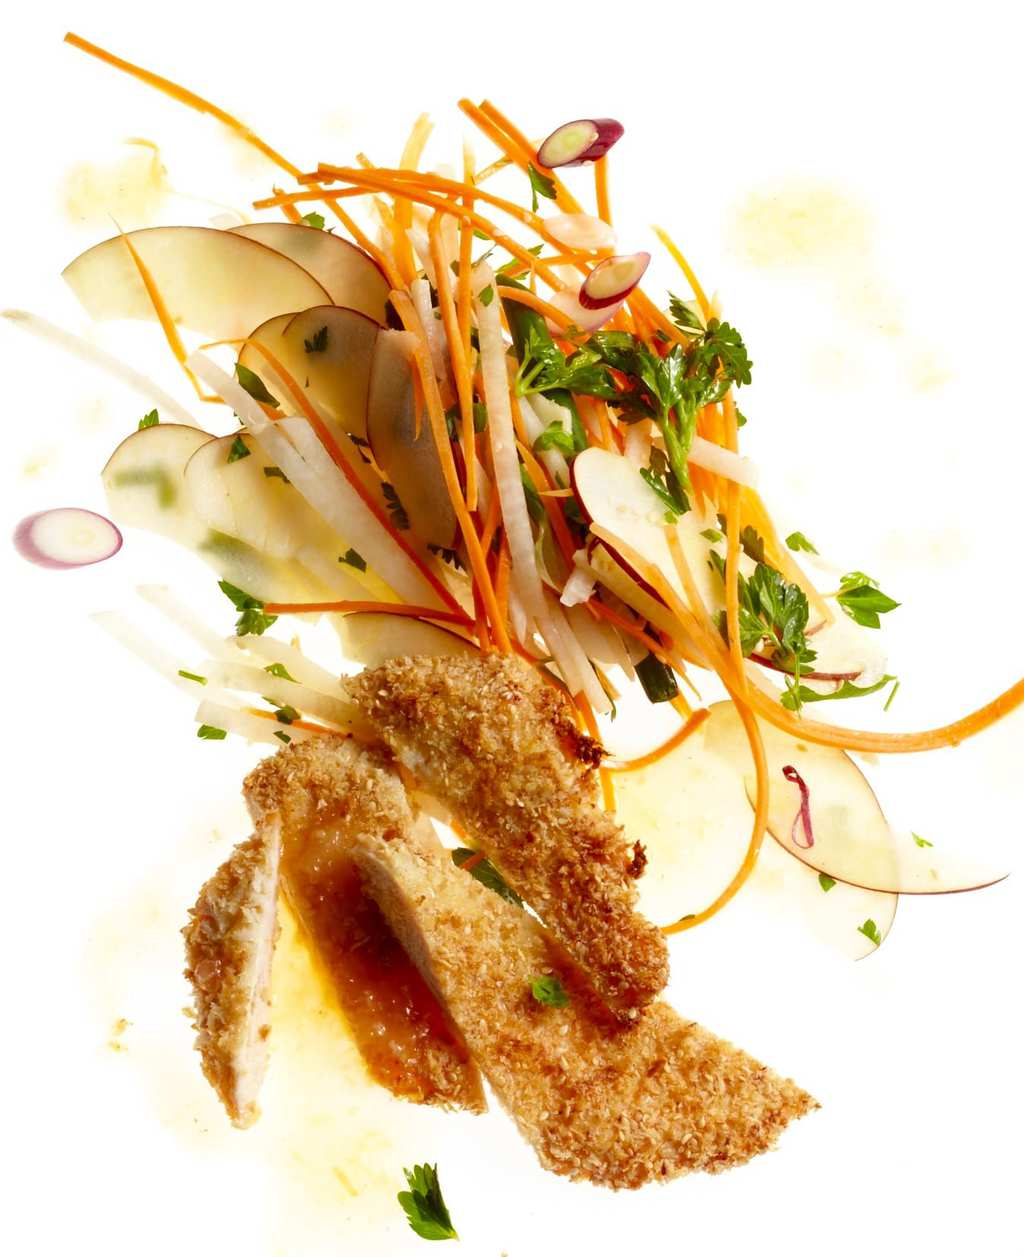 Sesame Chicken with Apple Carrot Slaw on lighted background